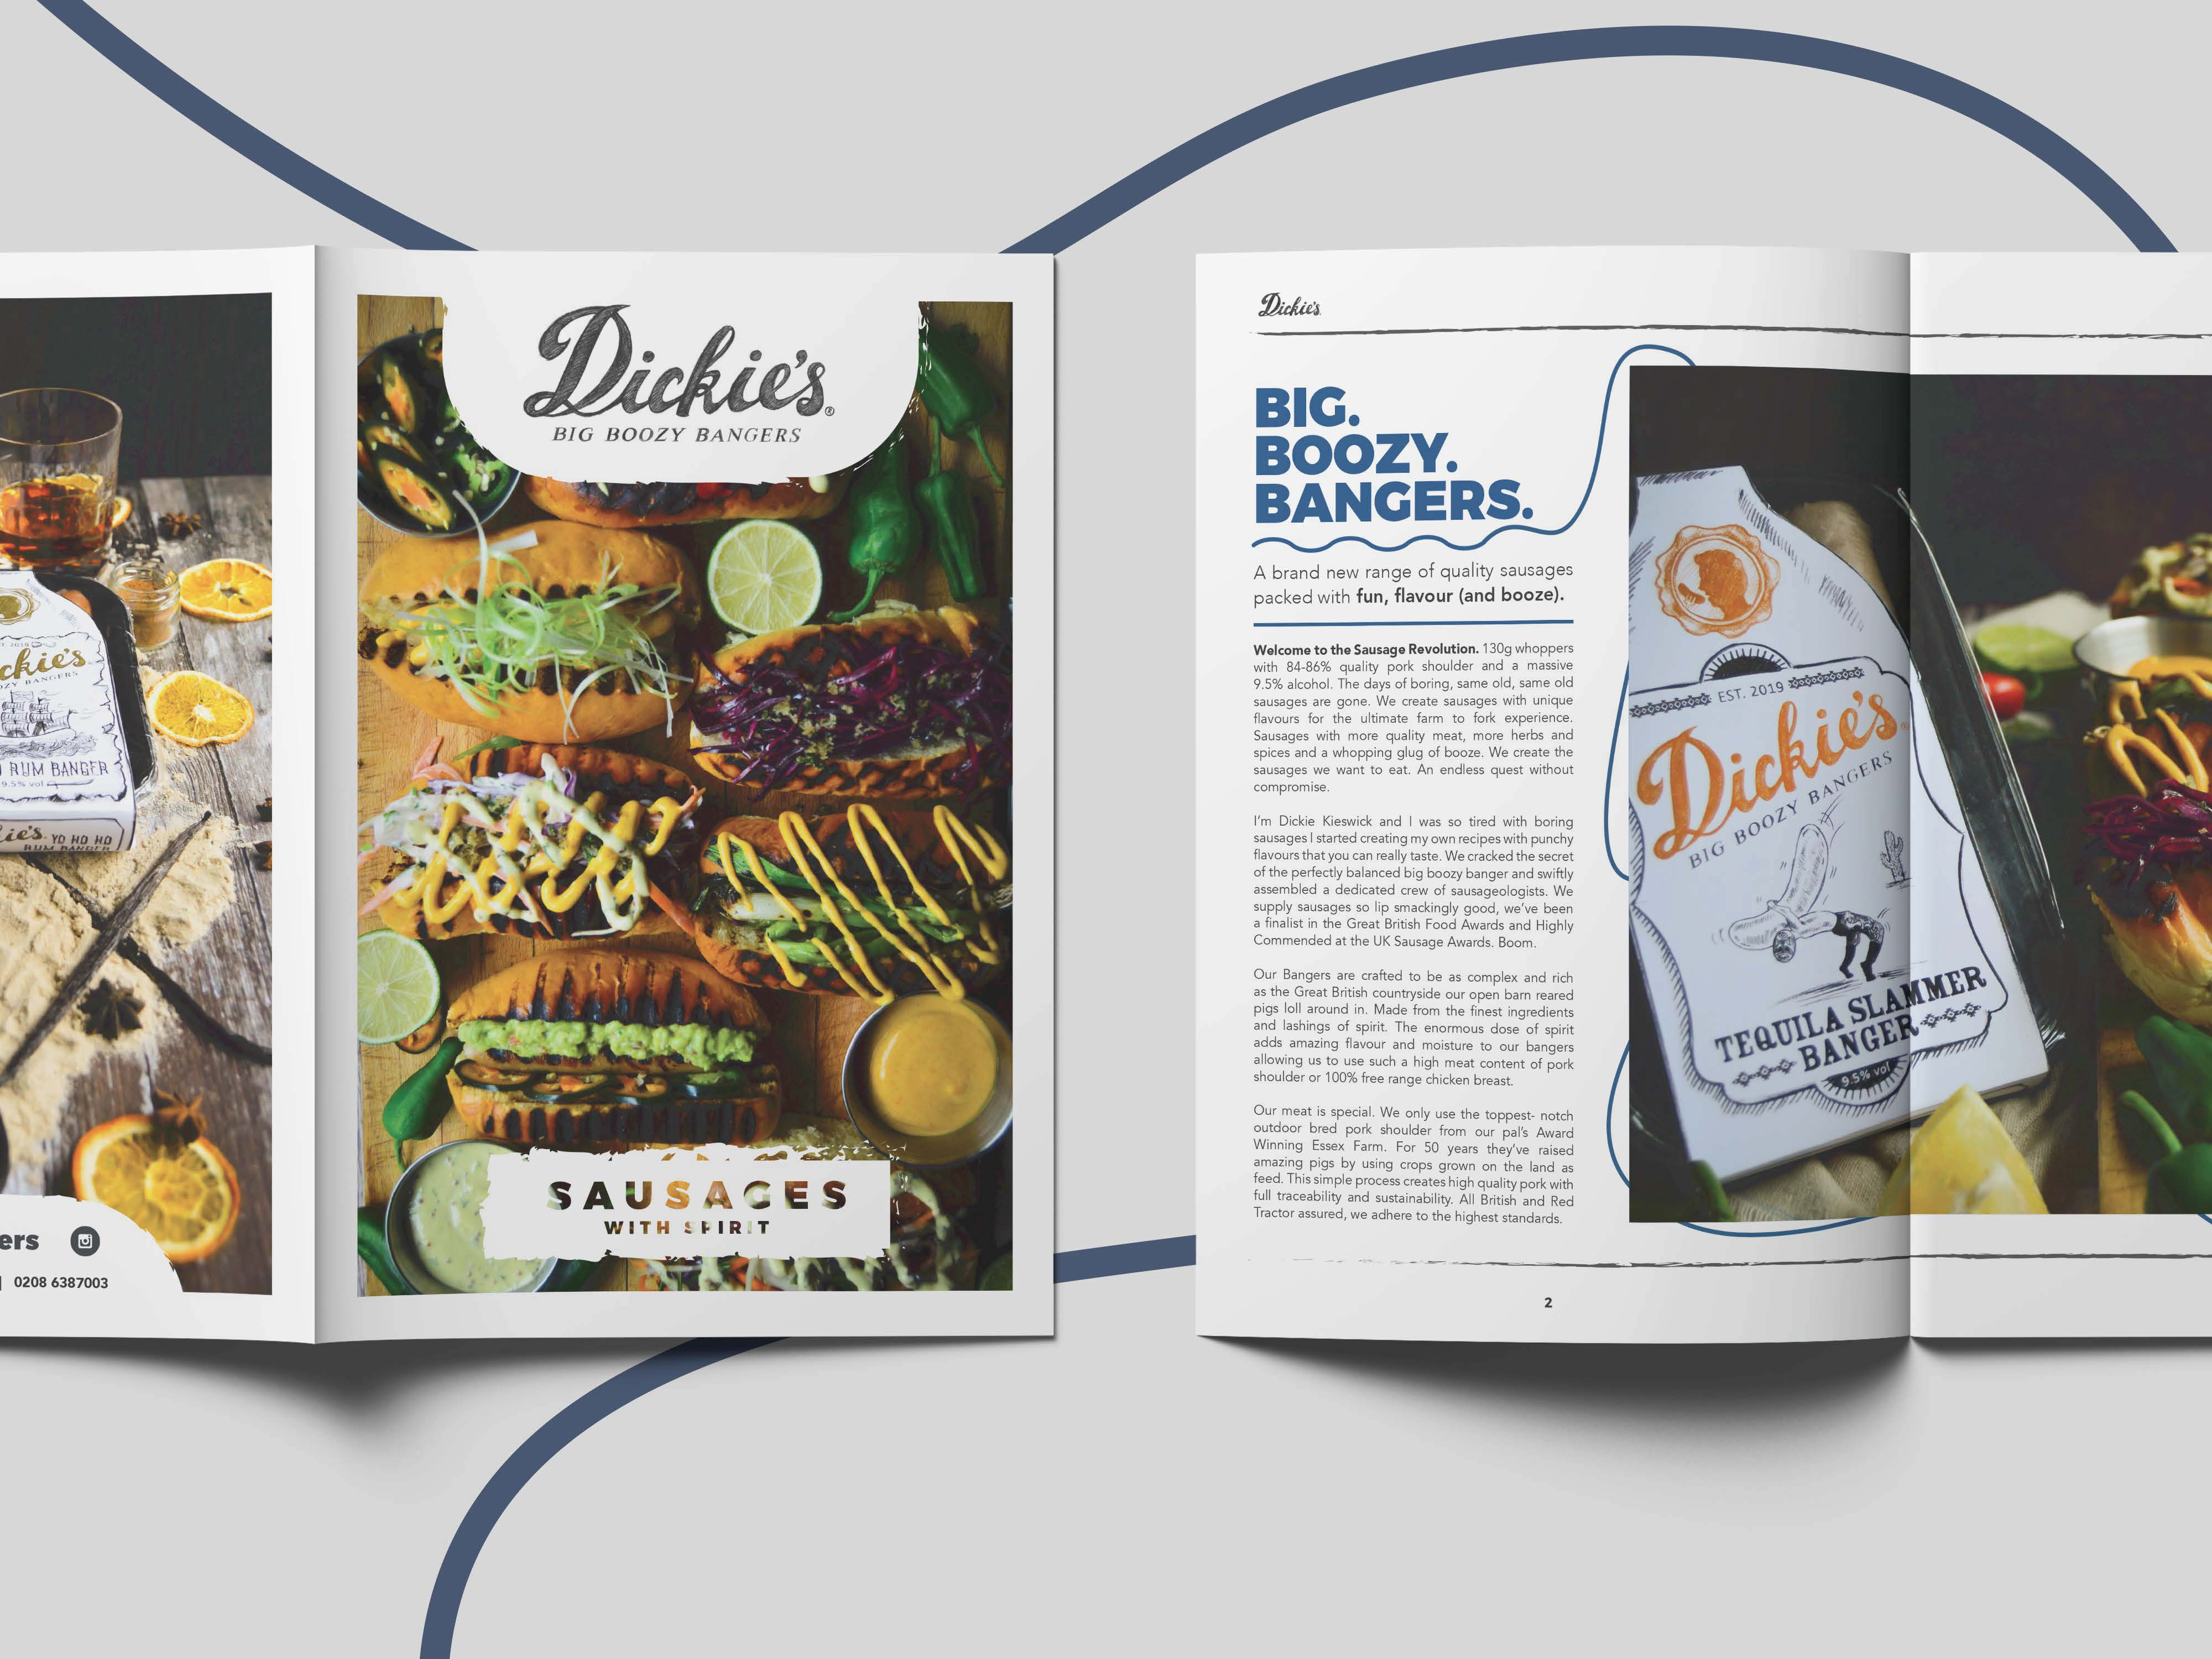 A brochure design of a front cover and inside pages with images of sausages and squiggly lines around the text